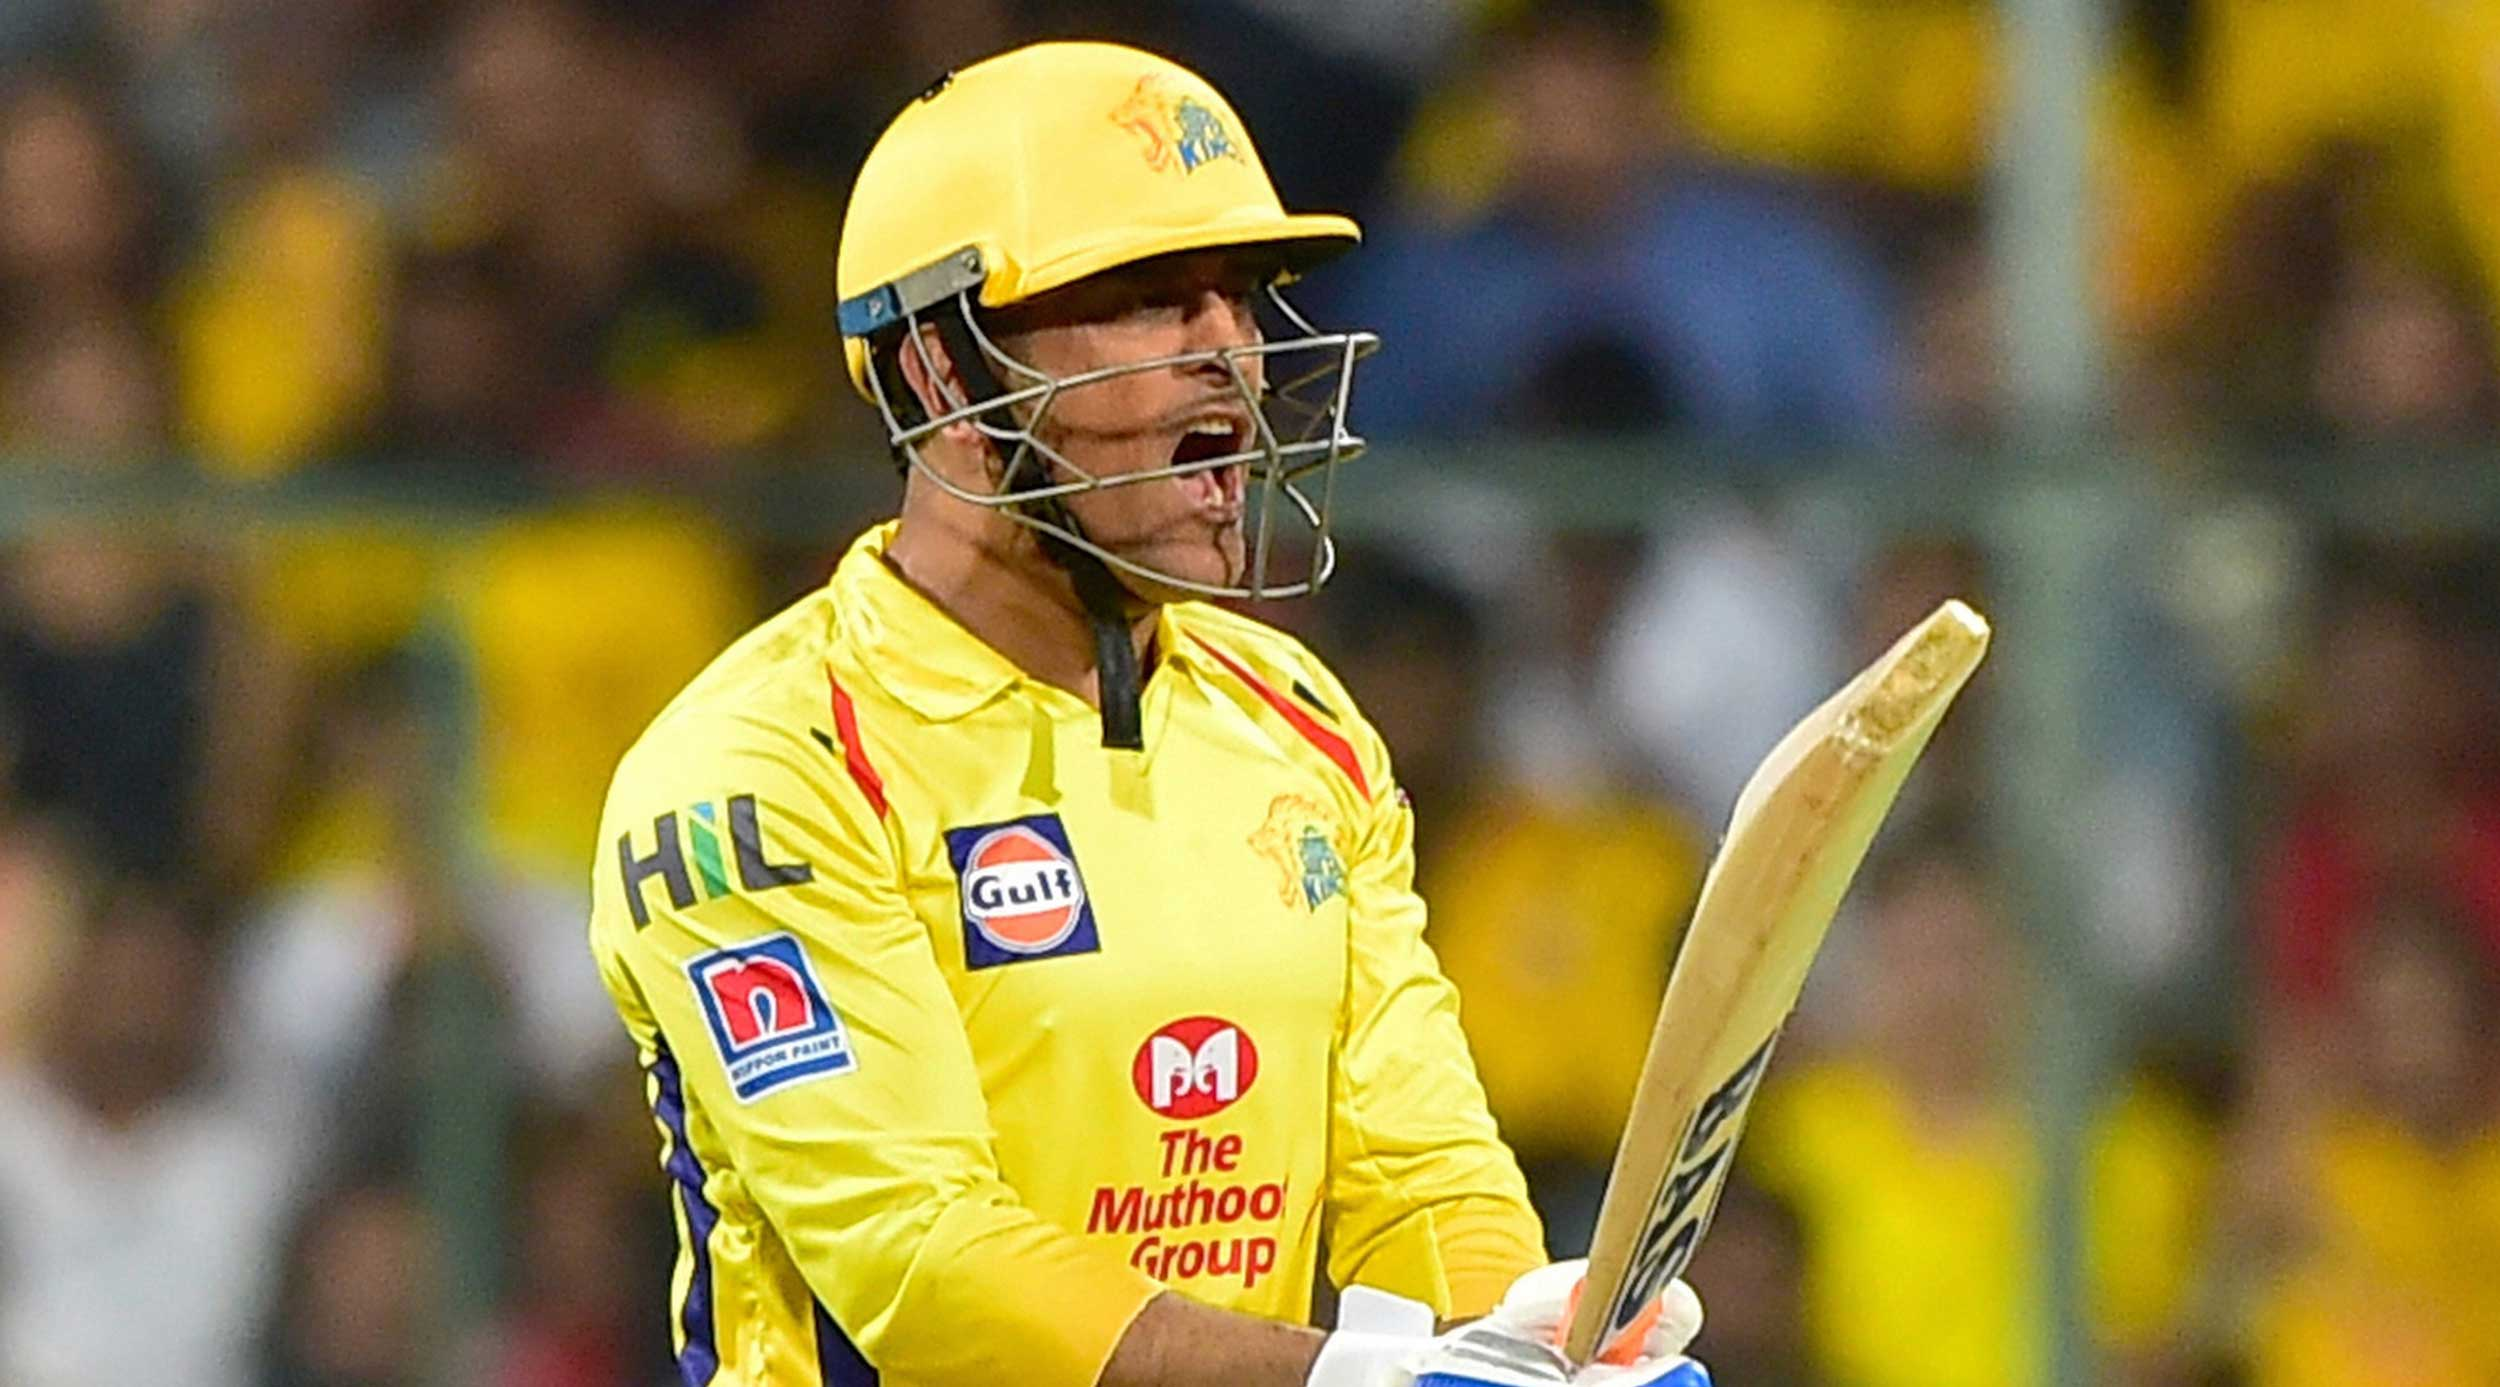 Dhoni reacts during the IPL T20 cricket match between RCB and CSK at Chinnaswamy Stadium in Bangalore, on April 21, 2019.